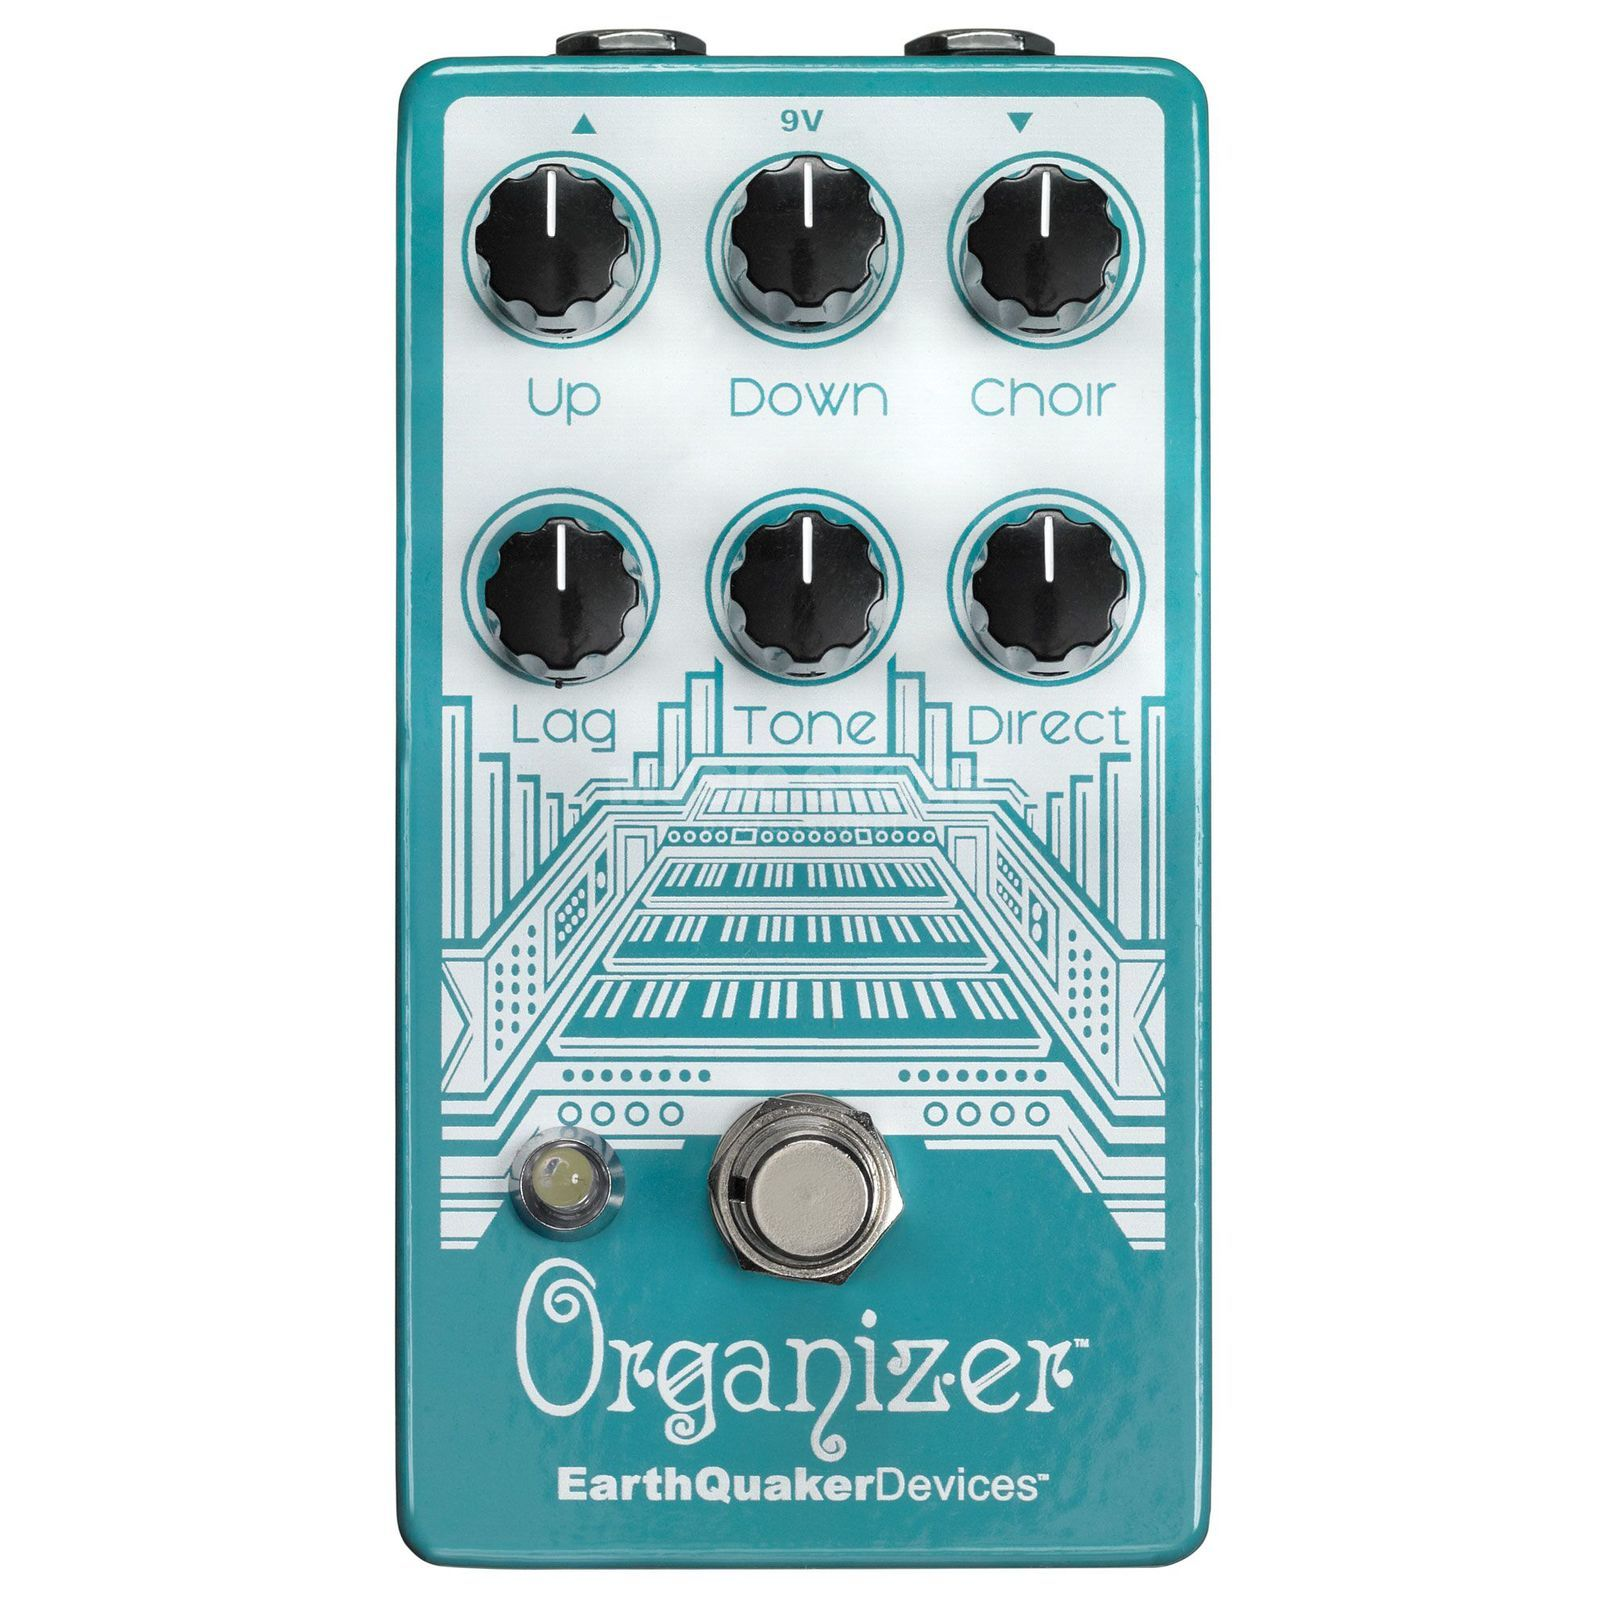 Earthquaker Devices Organizer V2 Imagem do produto